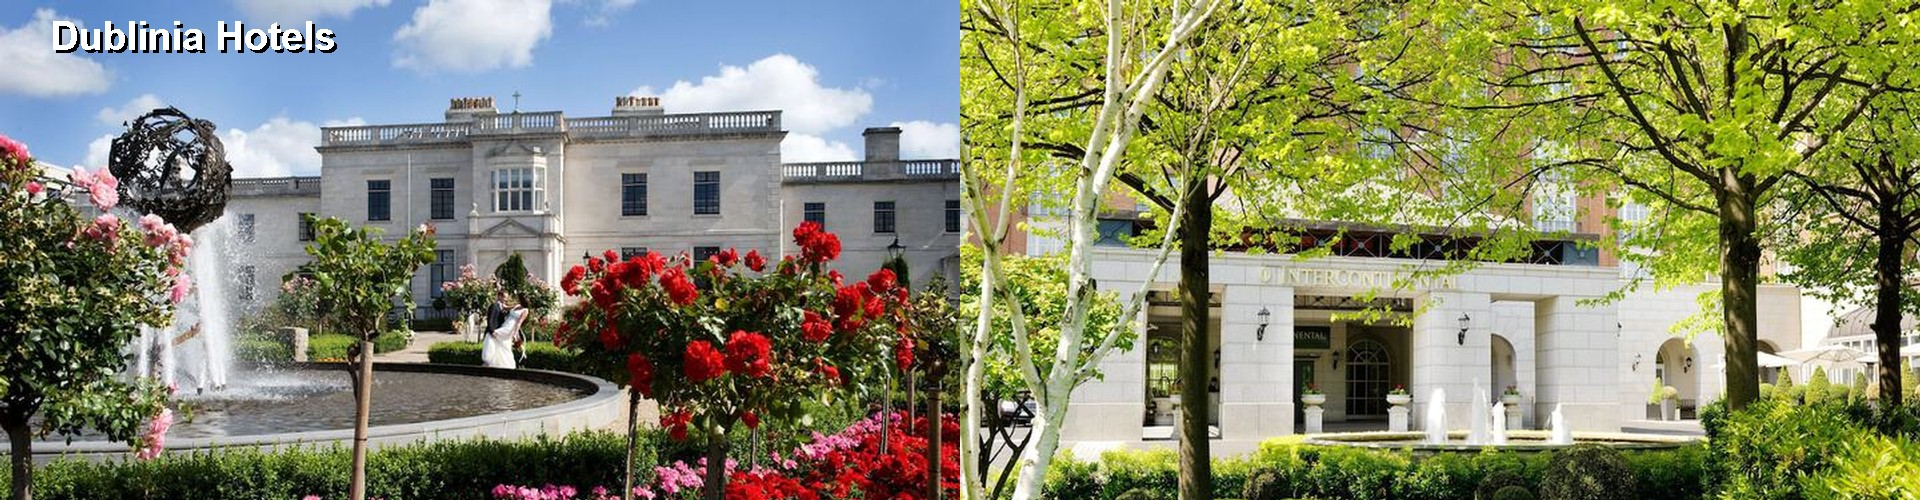 5 Best Hotels near Dublinia